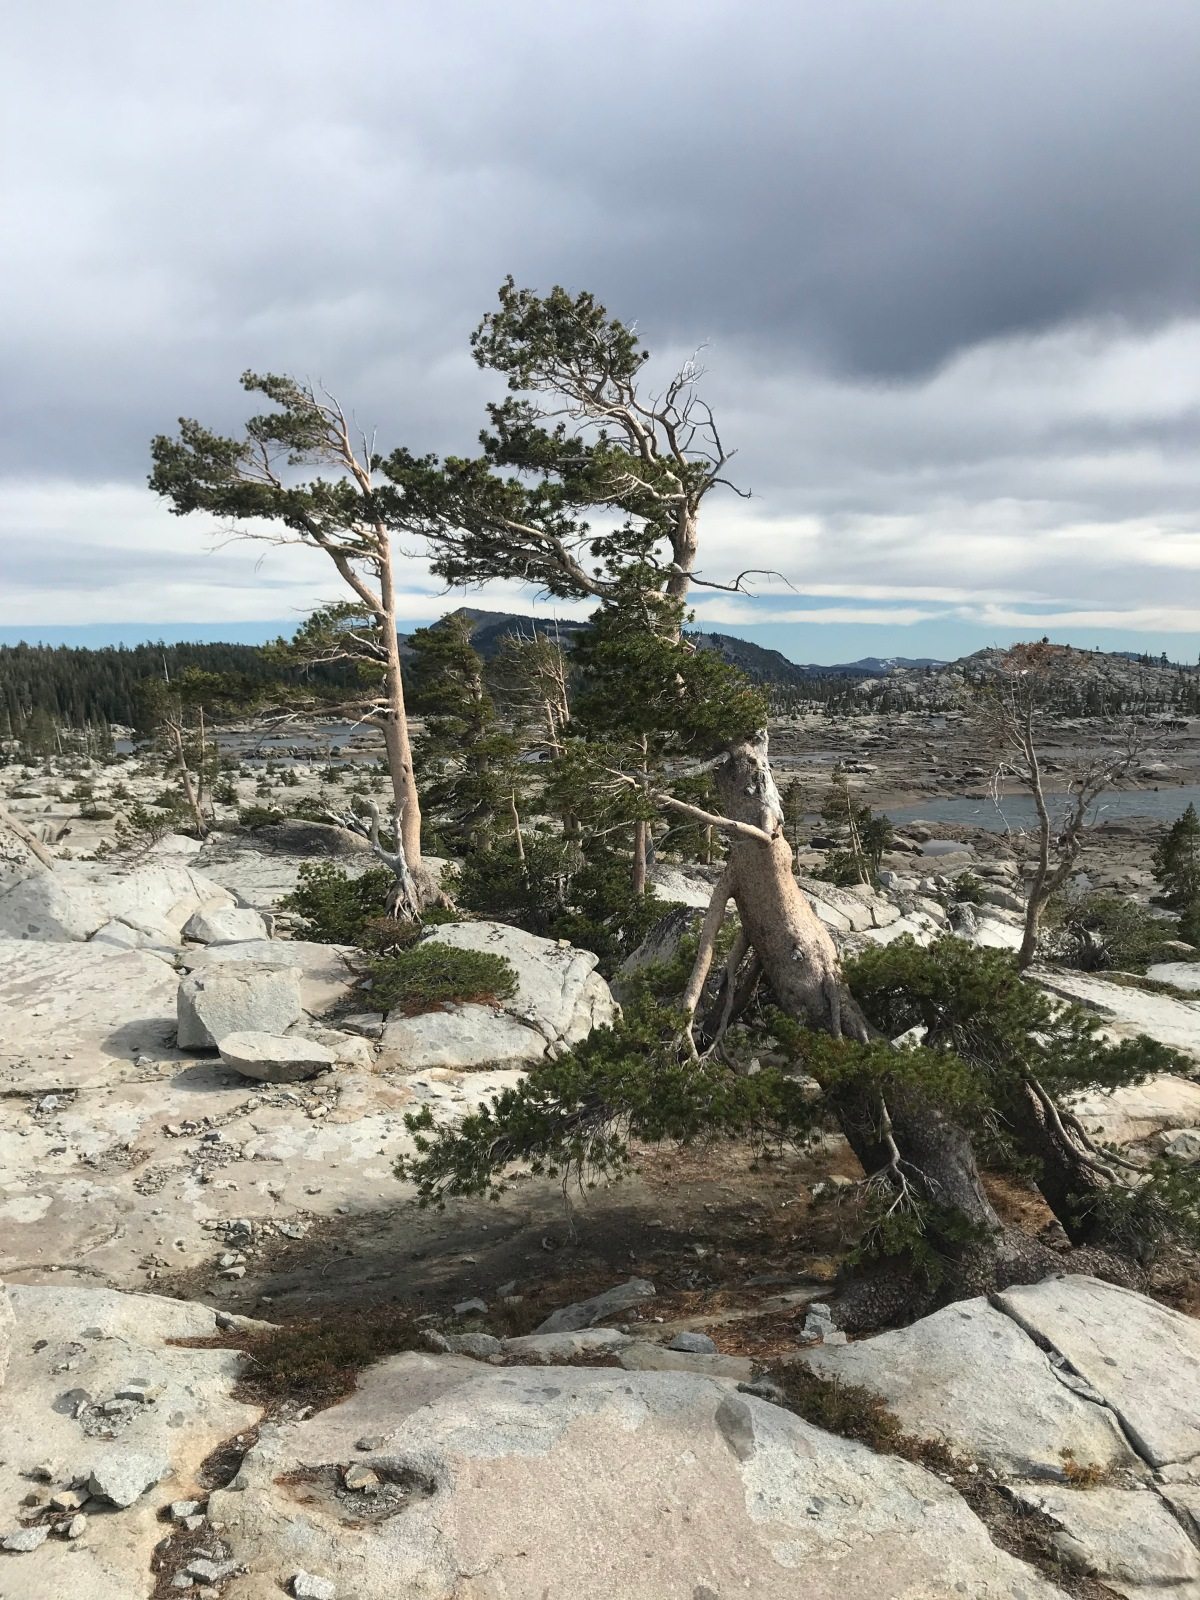 Image Description: Photo of several trees whose branches are permanently twisted from the wind, continuing to grow from solid grey rock against a cloudy background.